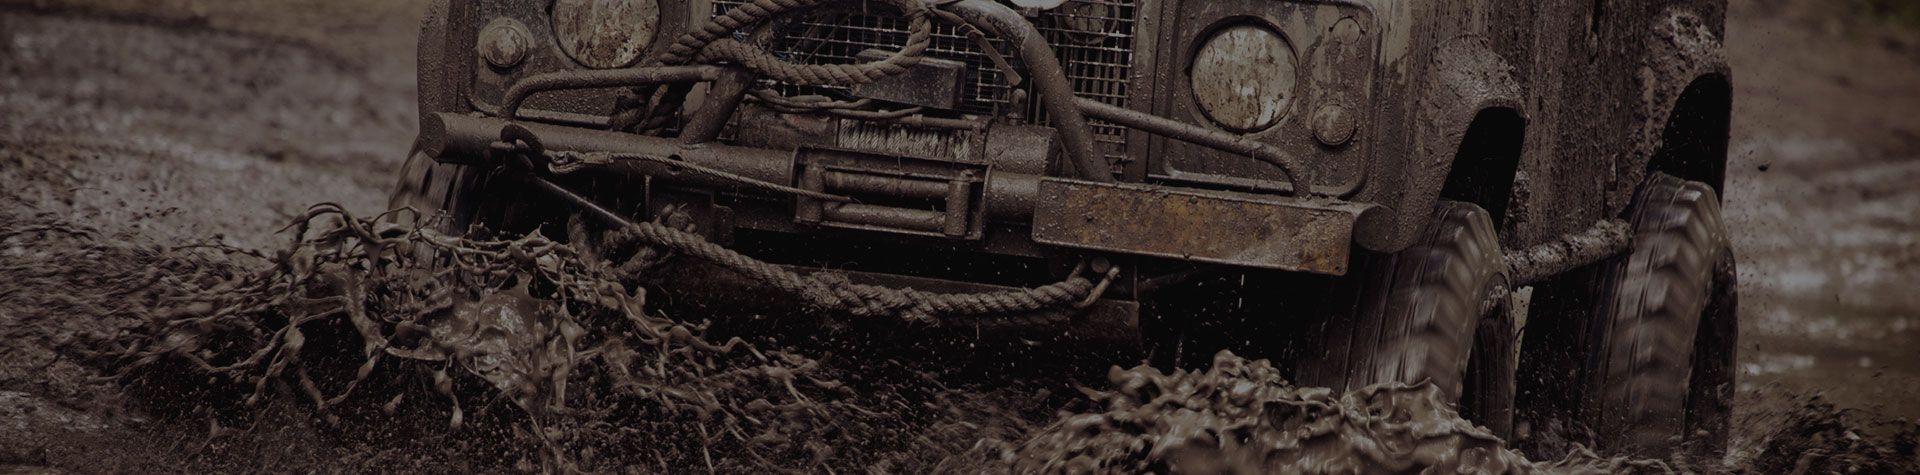 4x4 ploughing through the mud at Nottingham Driving